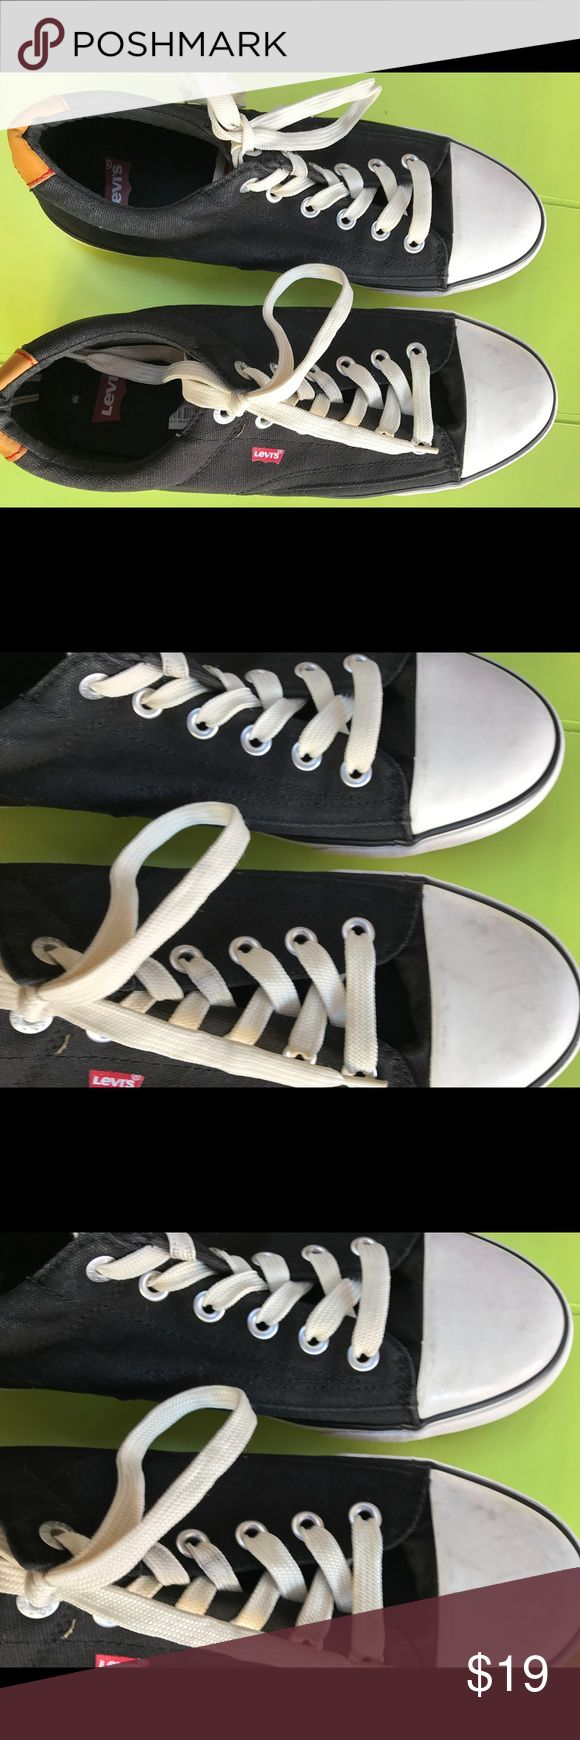 Men's Levi's sneakers converse style shoes size 11 Size 11 Levi's men's sneakers not new but in really good condition at a low low price Levi's Shoes Sneakers